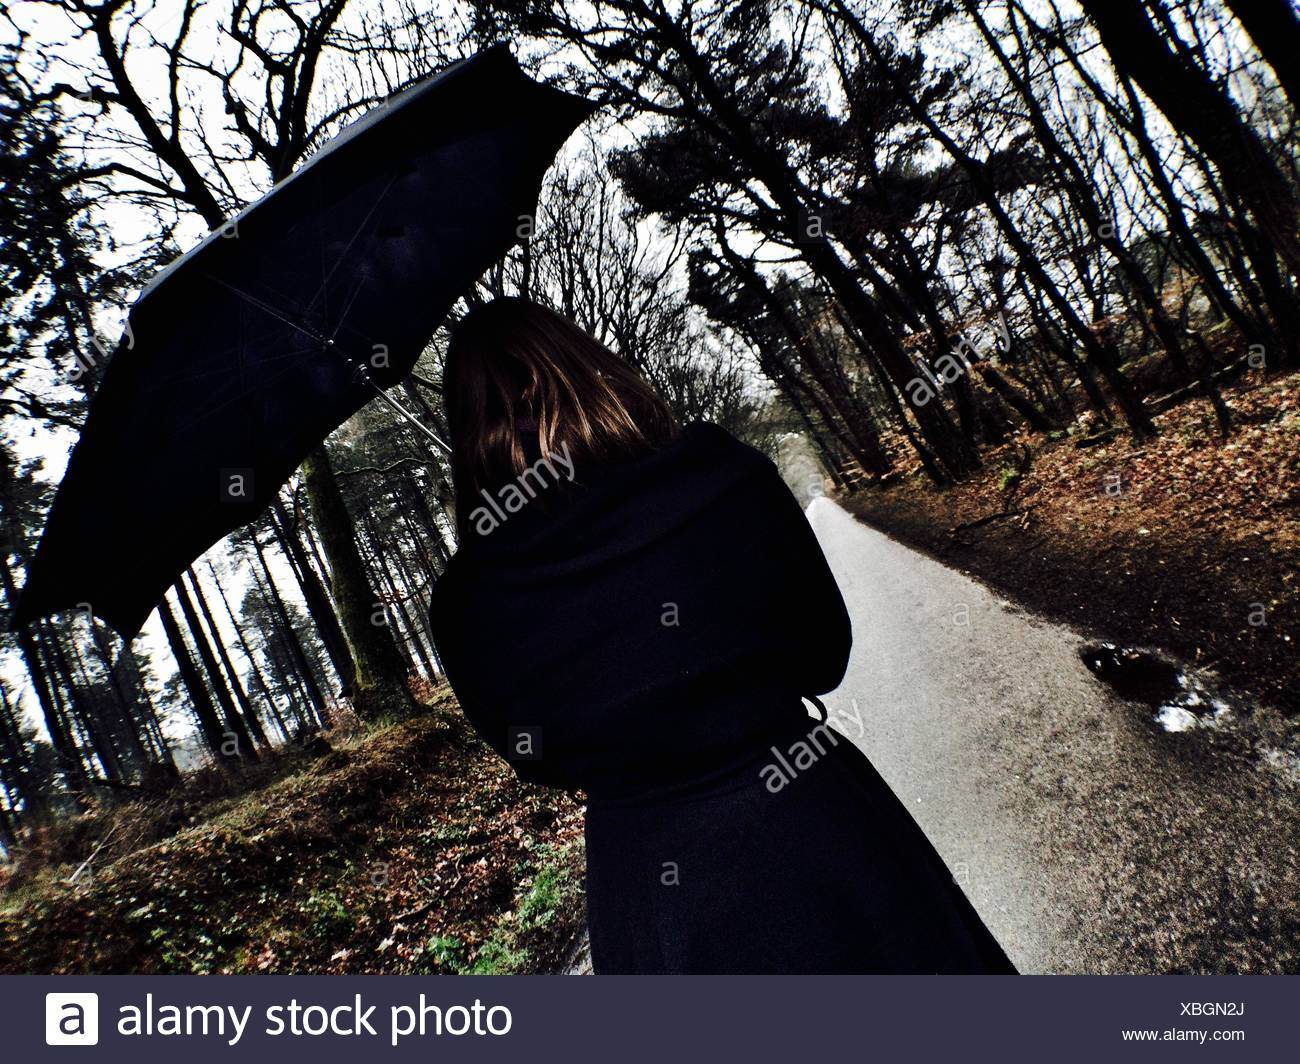 Rear View Of Woman Holding Umbrella Walking On Pathway Amidst Trees - Stock Image